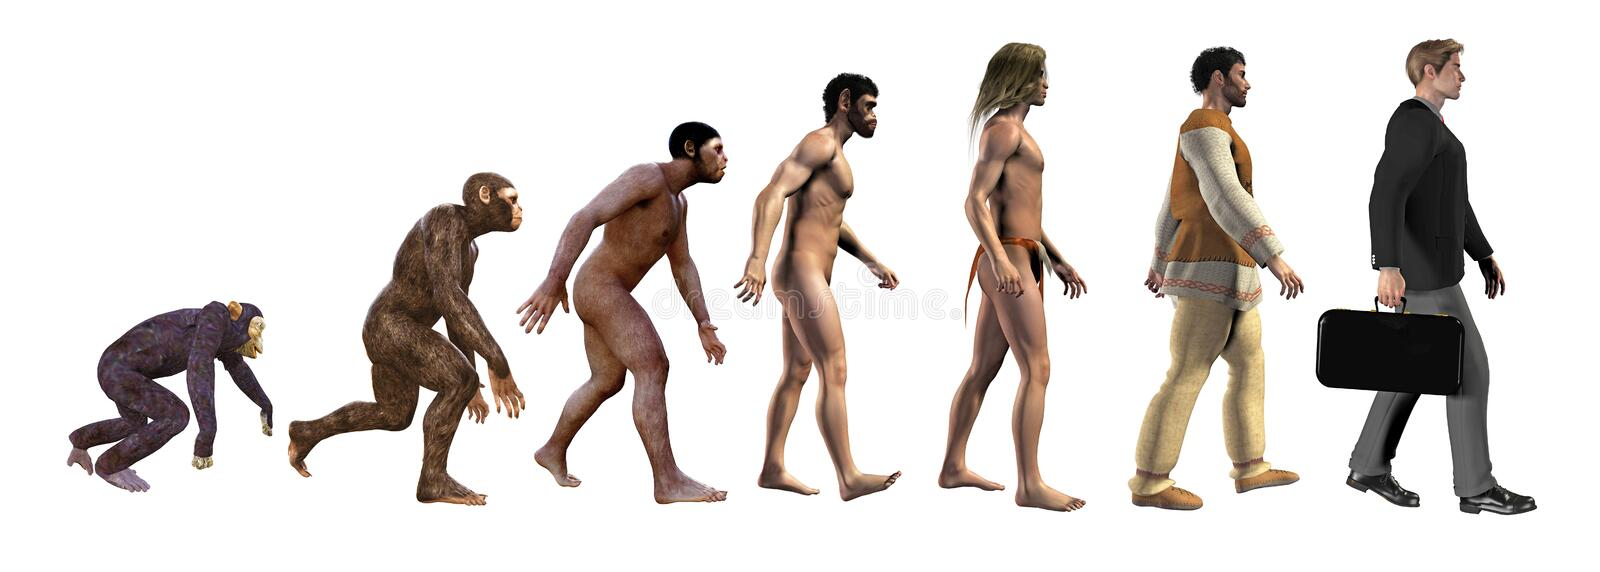 Human evolution, from apes to the business, 3d illustration. Human evolution, from apes to the business man, 3d illustration, men, history, DNA, astronaut, for stock illustration